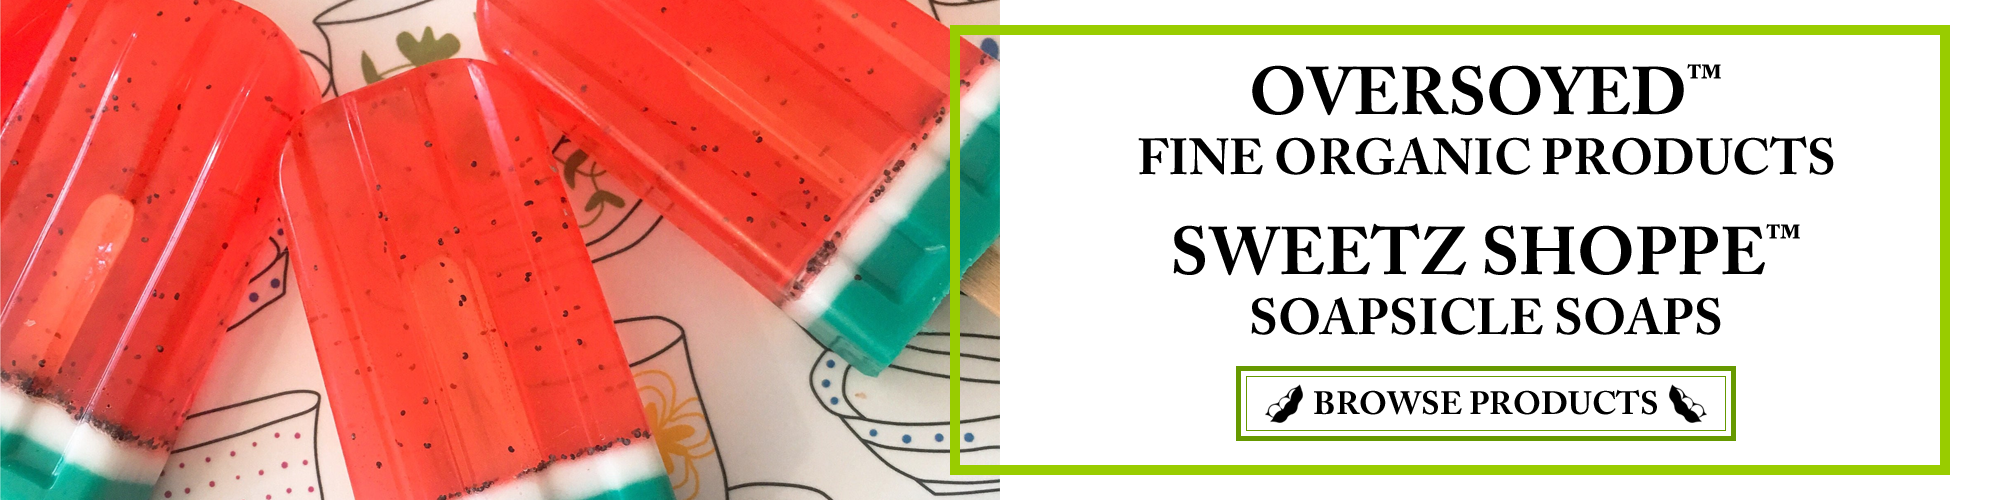 OverSoyed Fine Organic Products - Sweetz Shoppe™ Soapsicle Popsicle Soaps